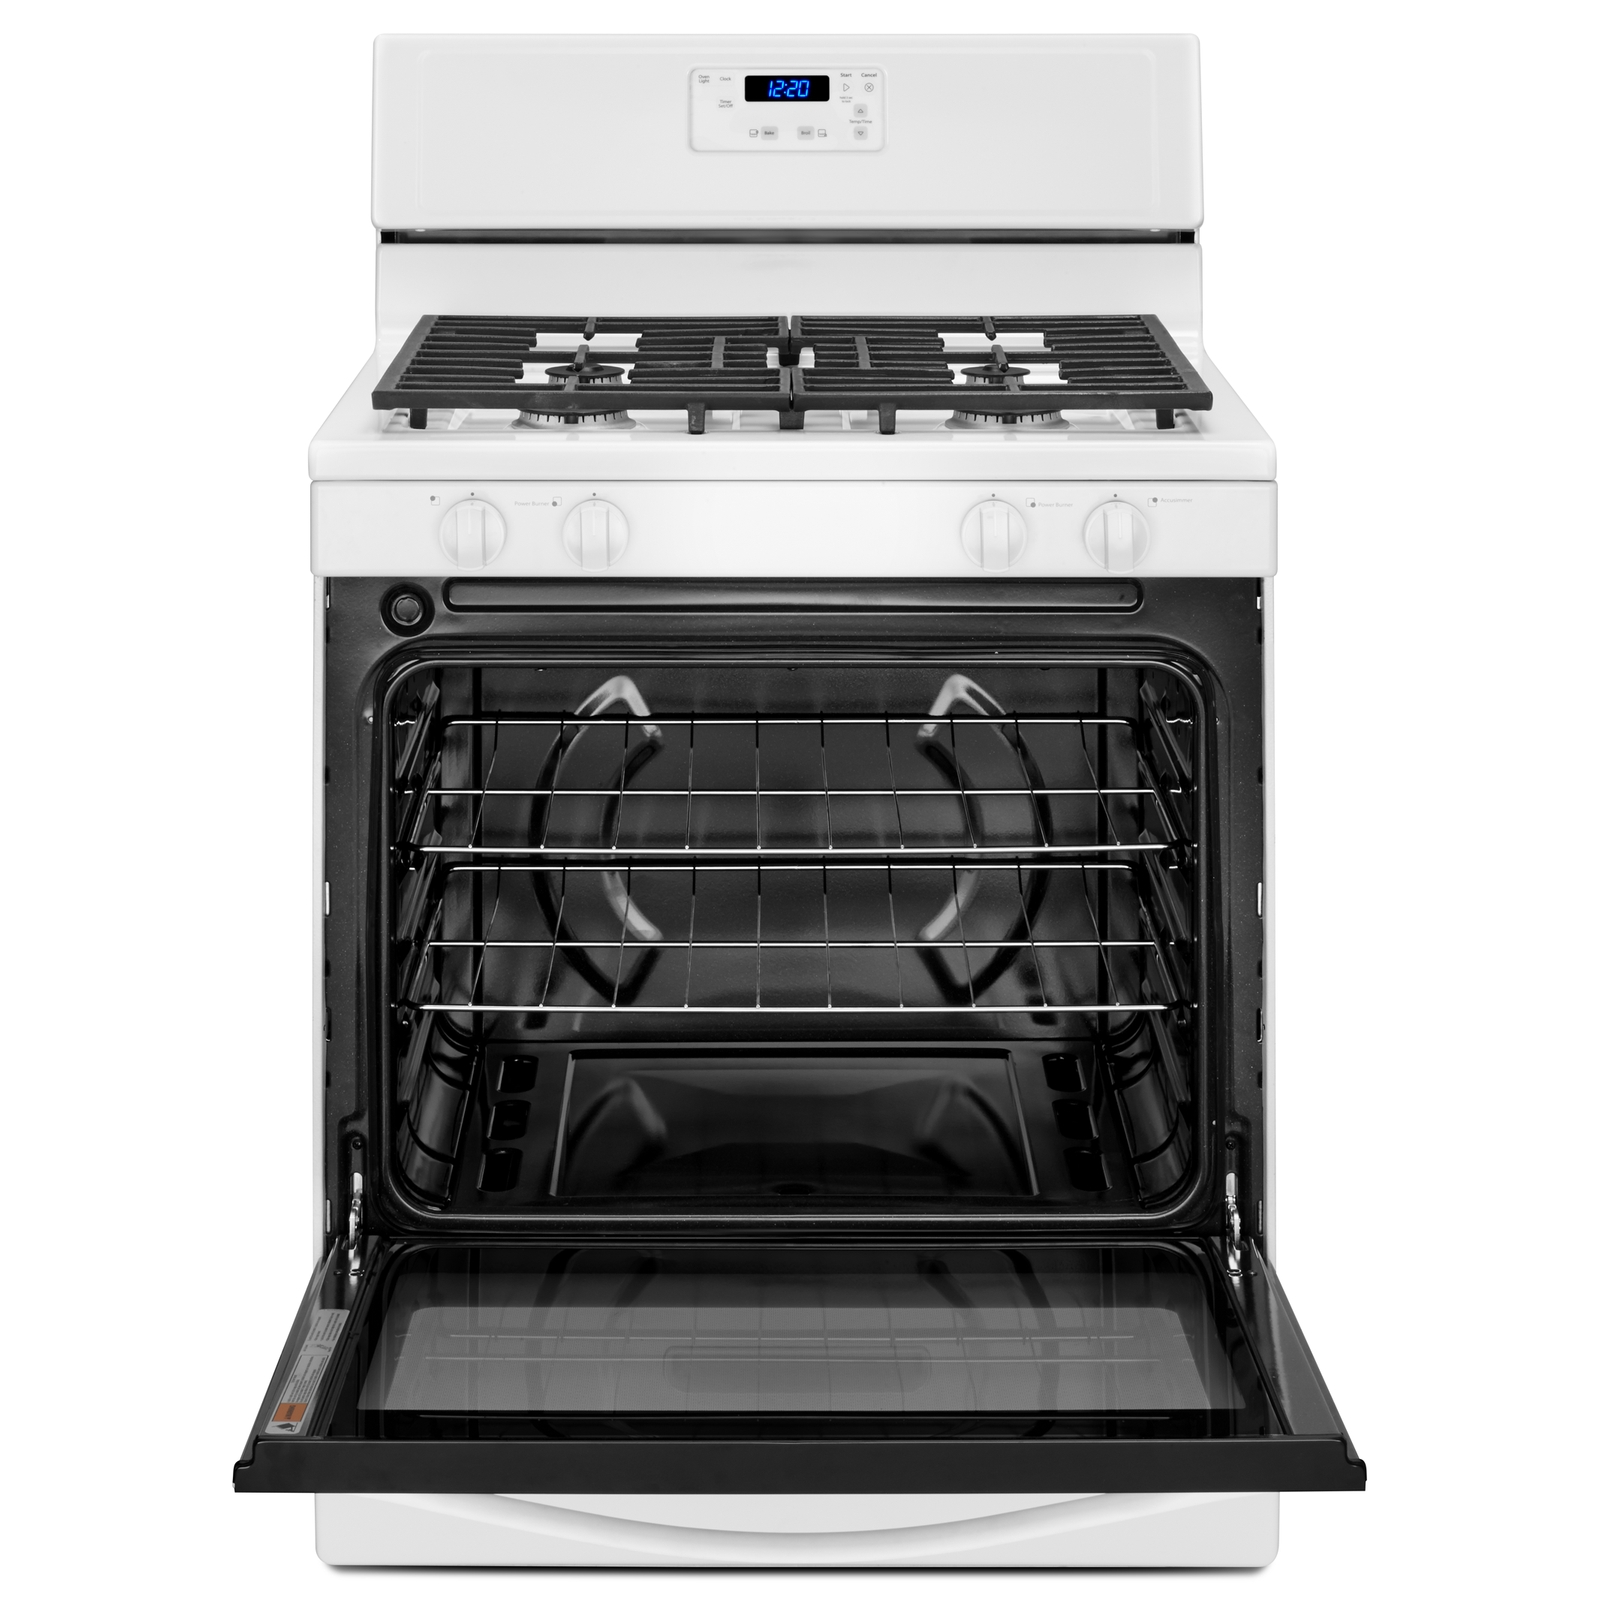 Whirlpool WFG320M0BW 5.1 cu. ft. Gas Range w/ Broiler Drawer - White